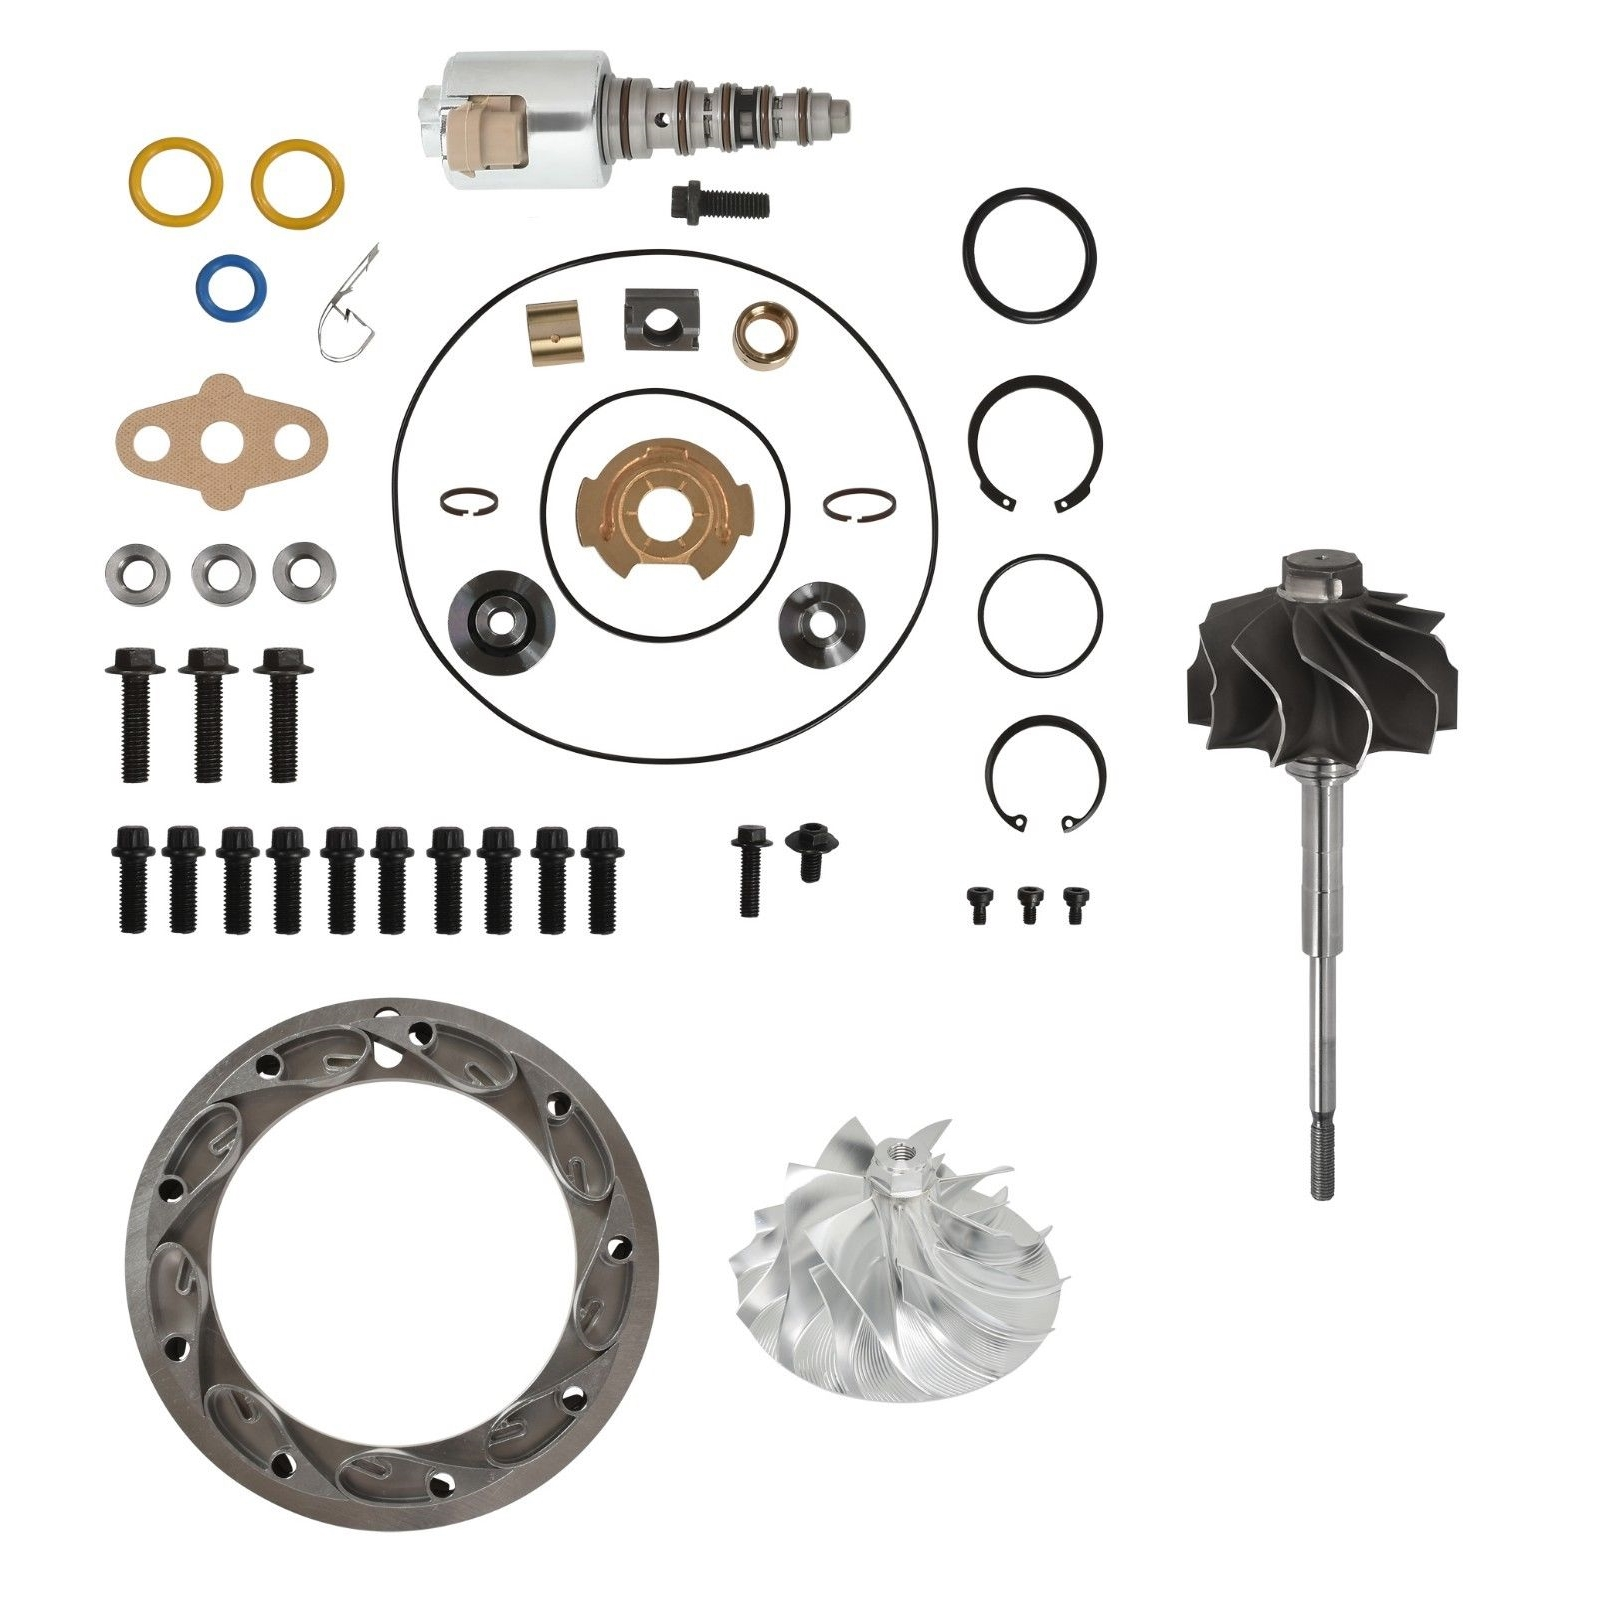 GT3782VA Master Turbo Rebuild Kit Billet Compressor Wheel For 05.5-10 6.0L Ford Powerstroke Diesel